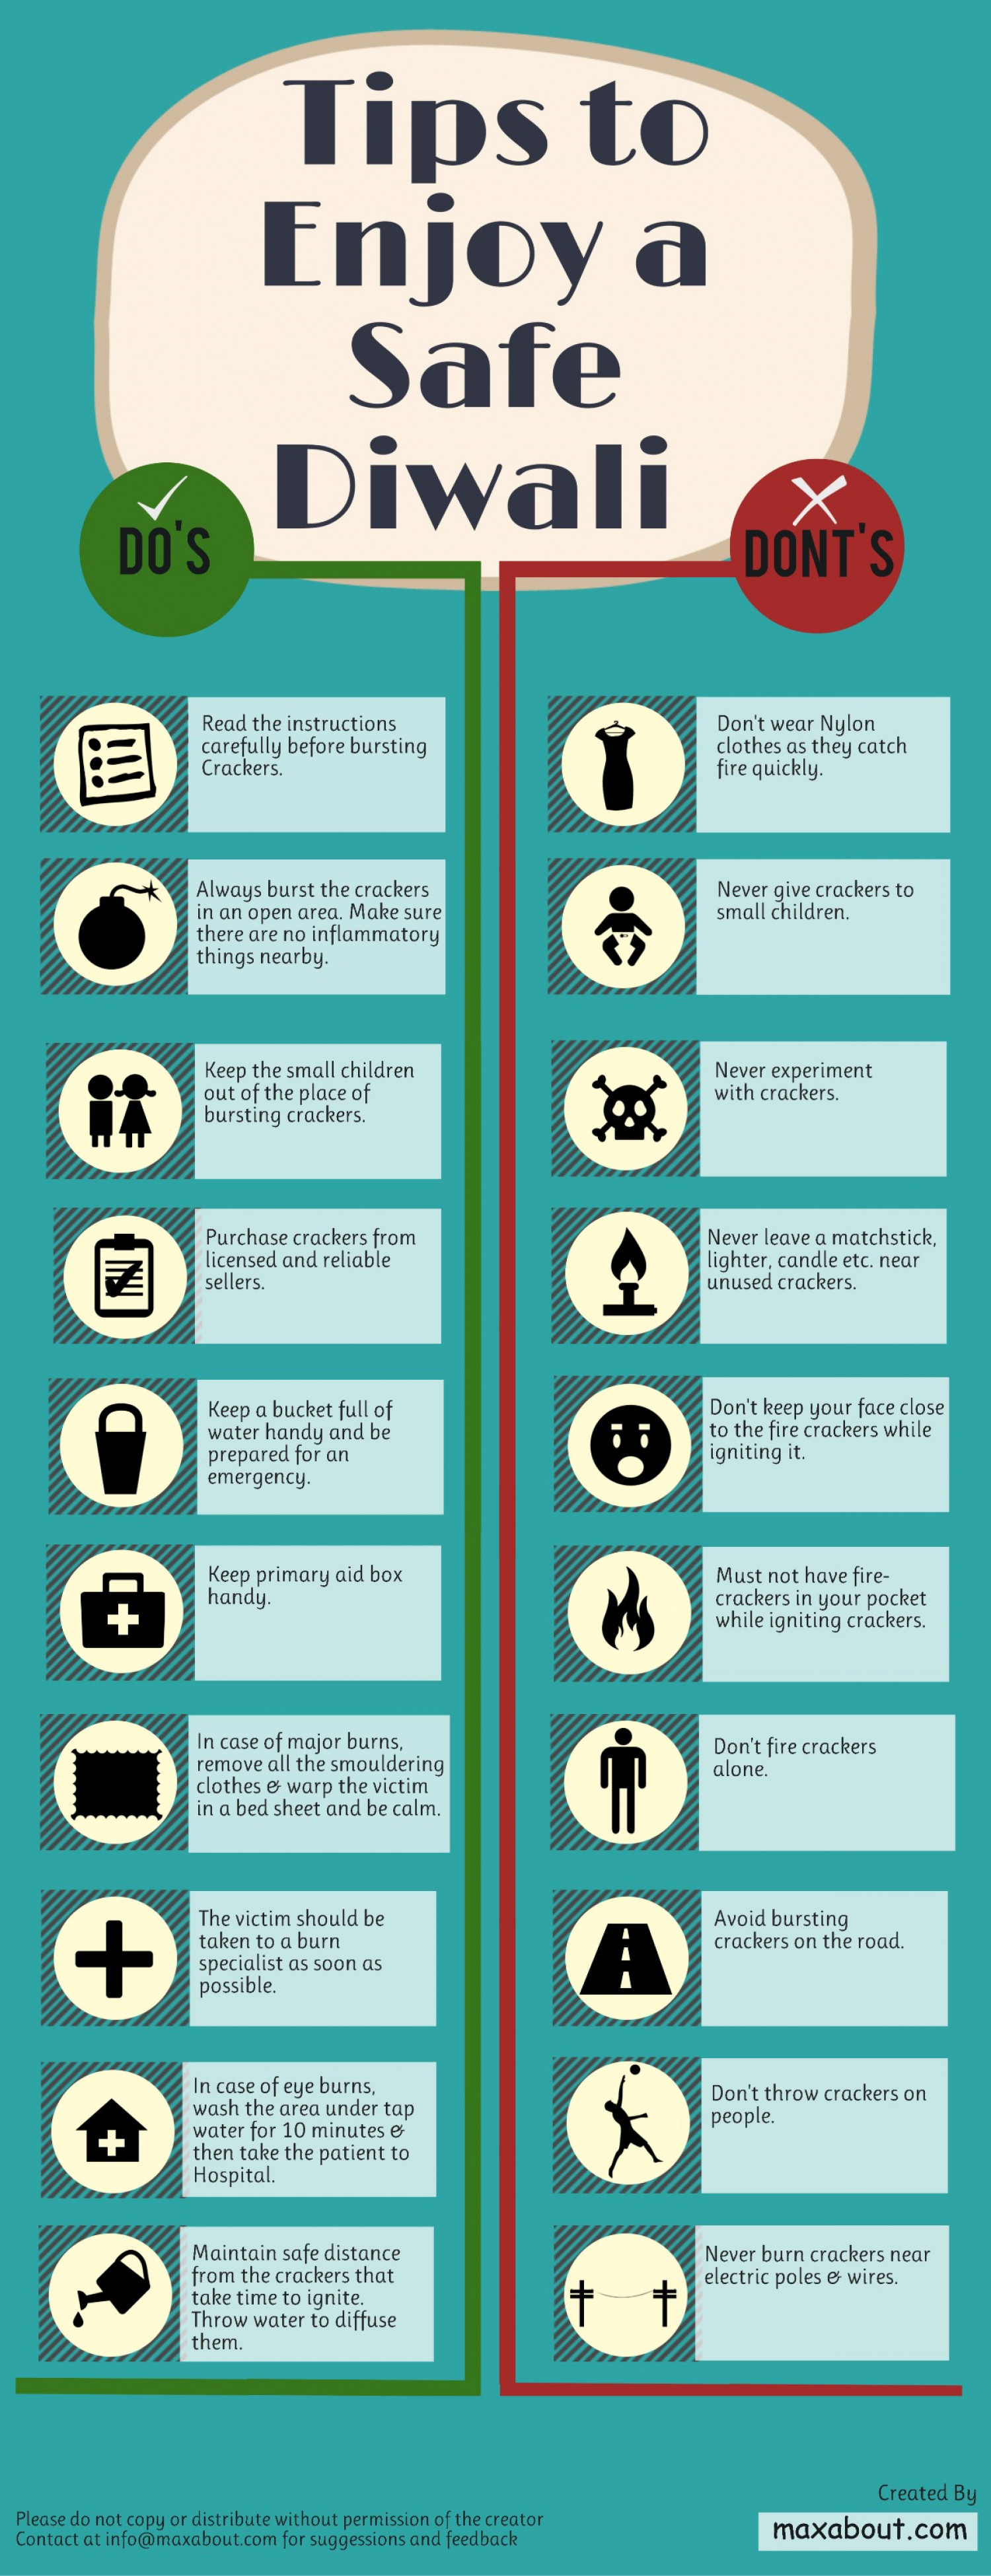 Tips to Enjoy a Safe Diwali – Do's and Don'ts Infographic